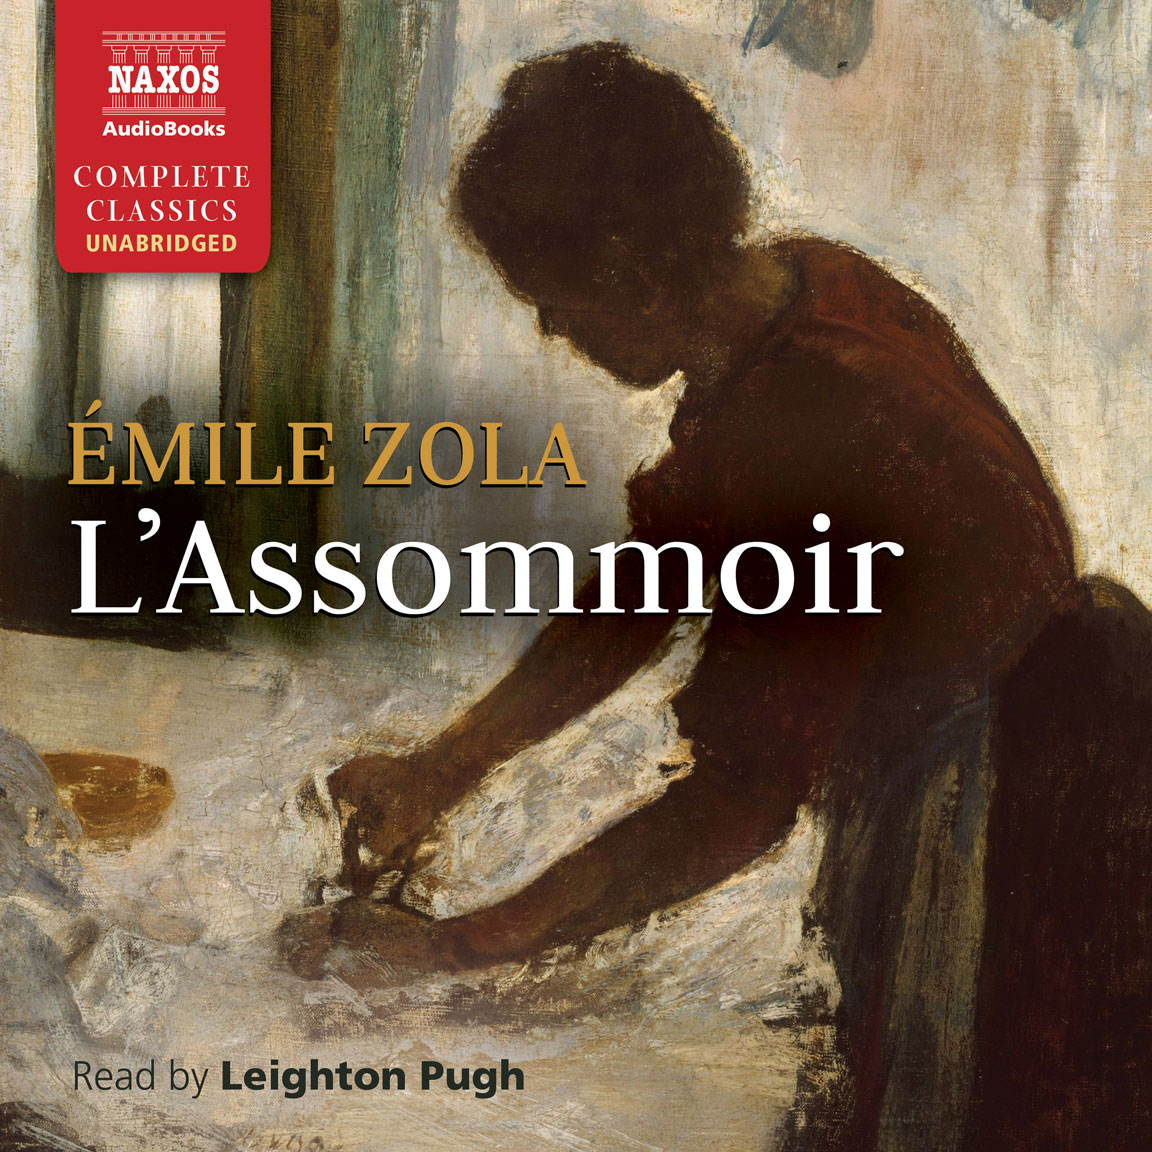 L'Assommoir (unabridged)